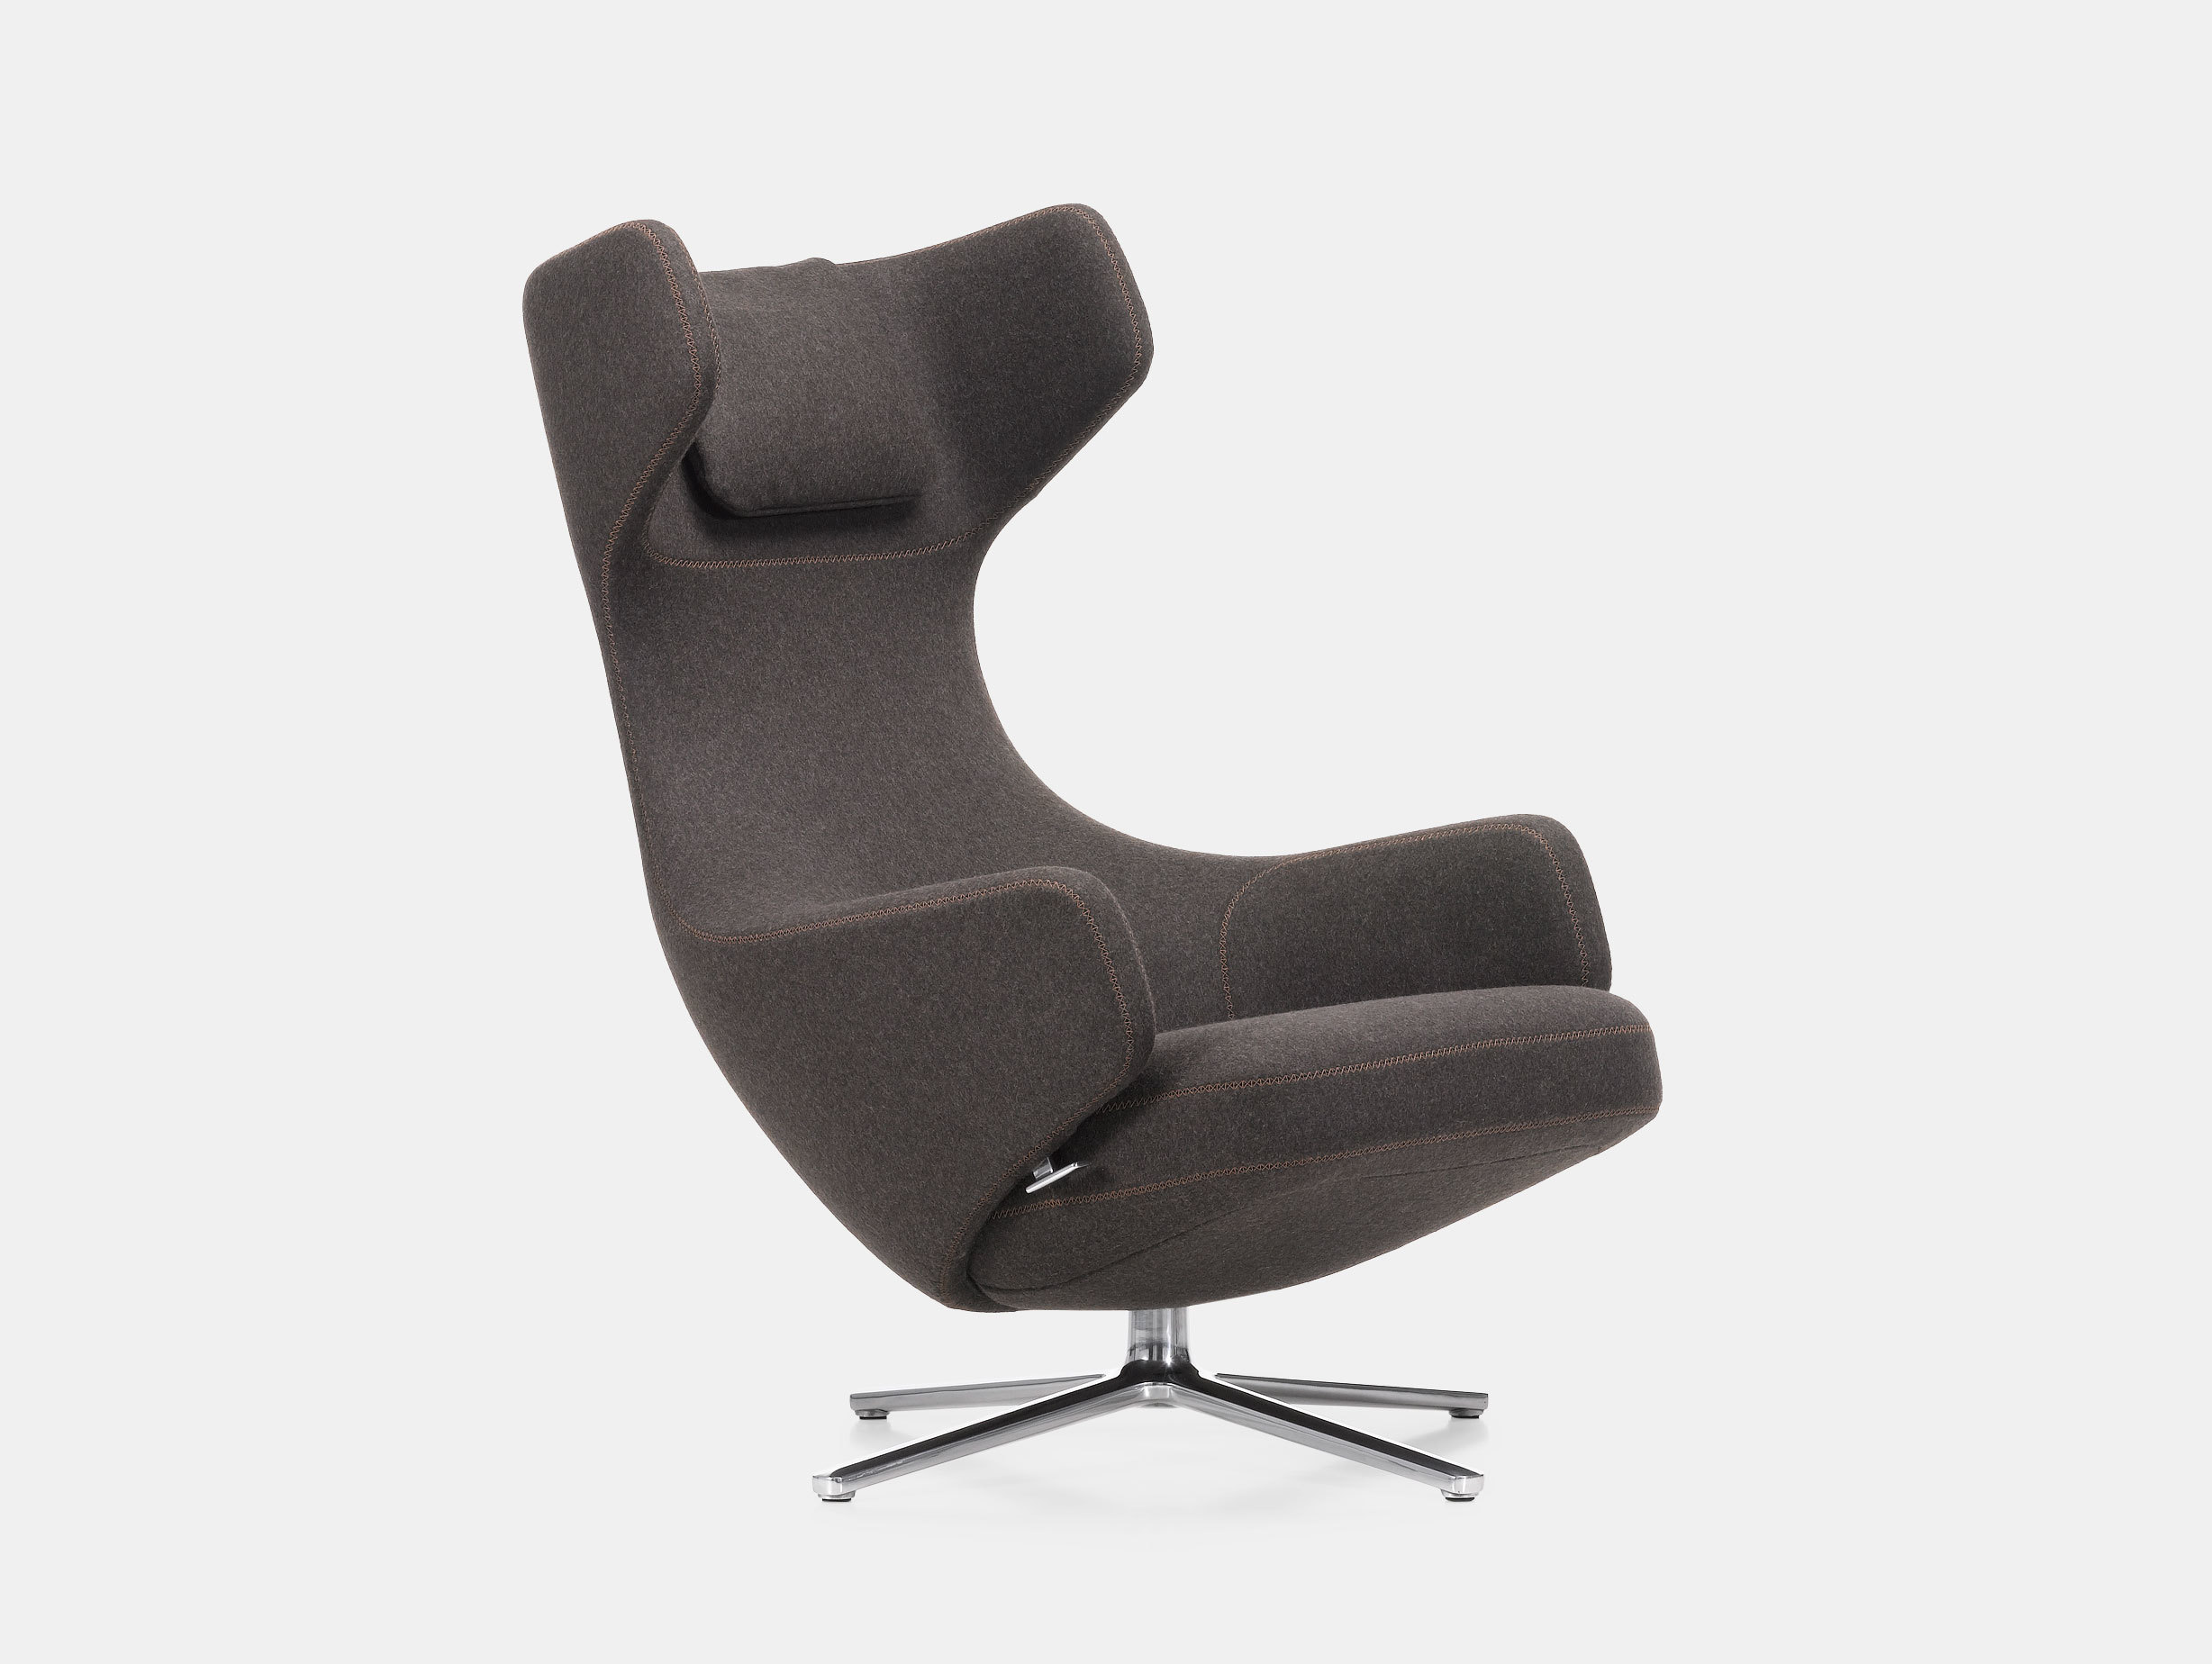 Grand Repos Lounge Chair image 2